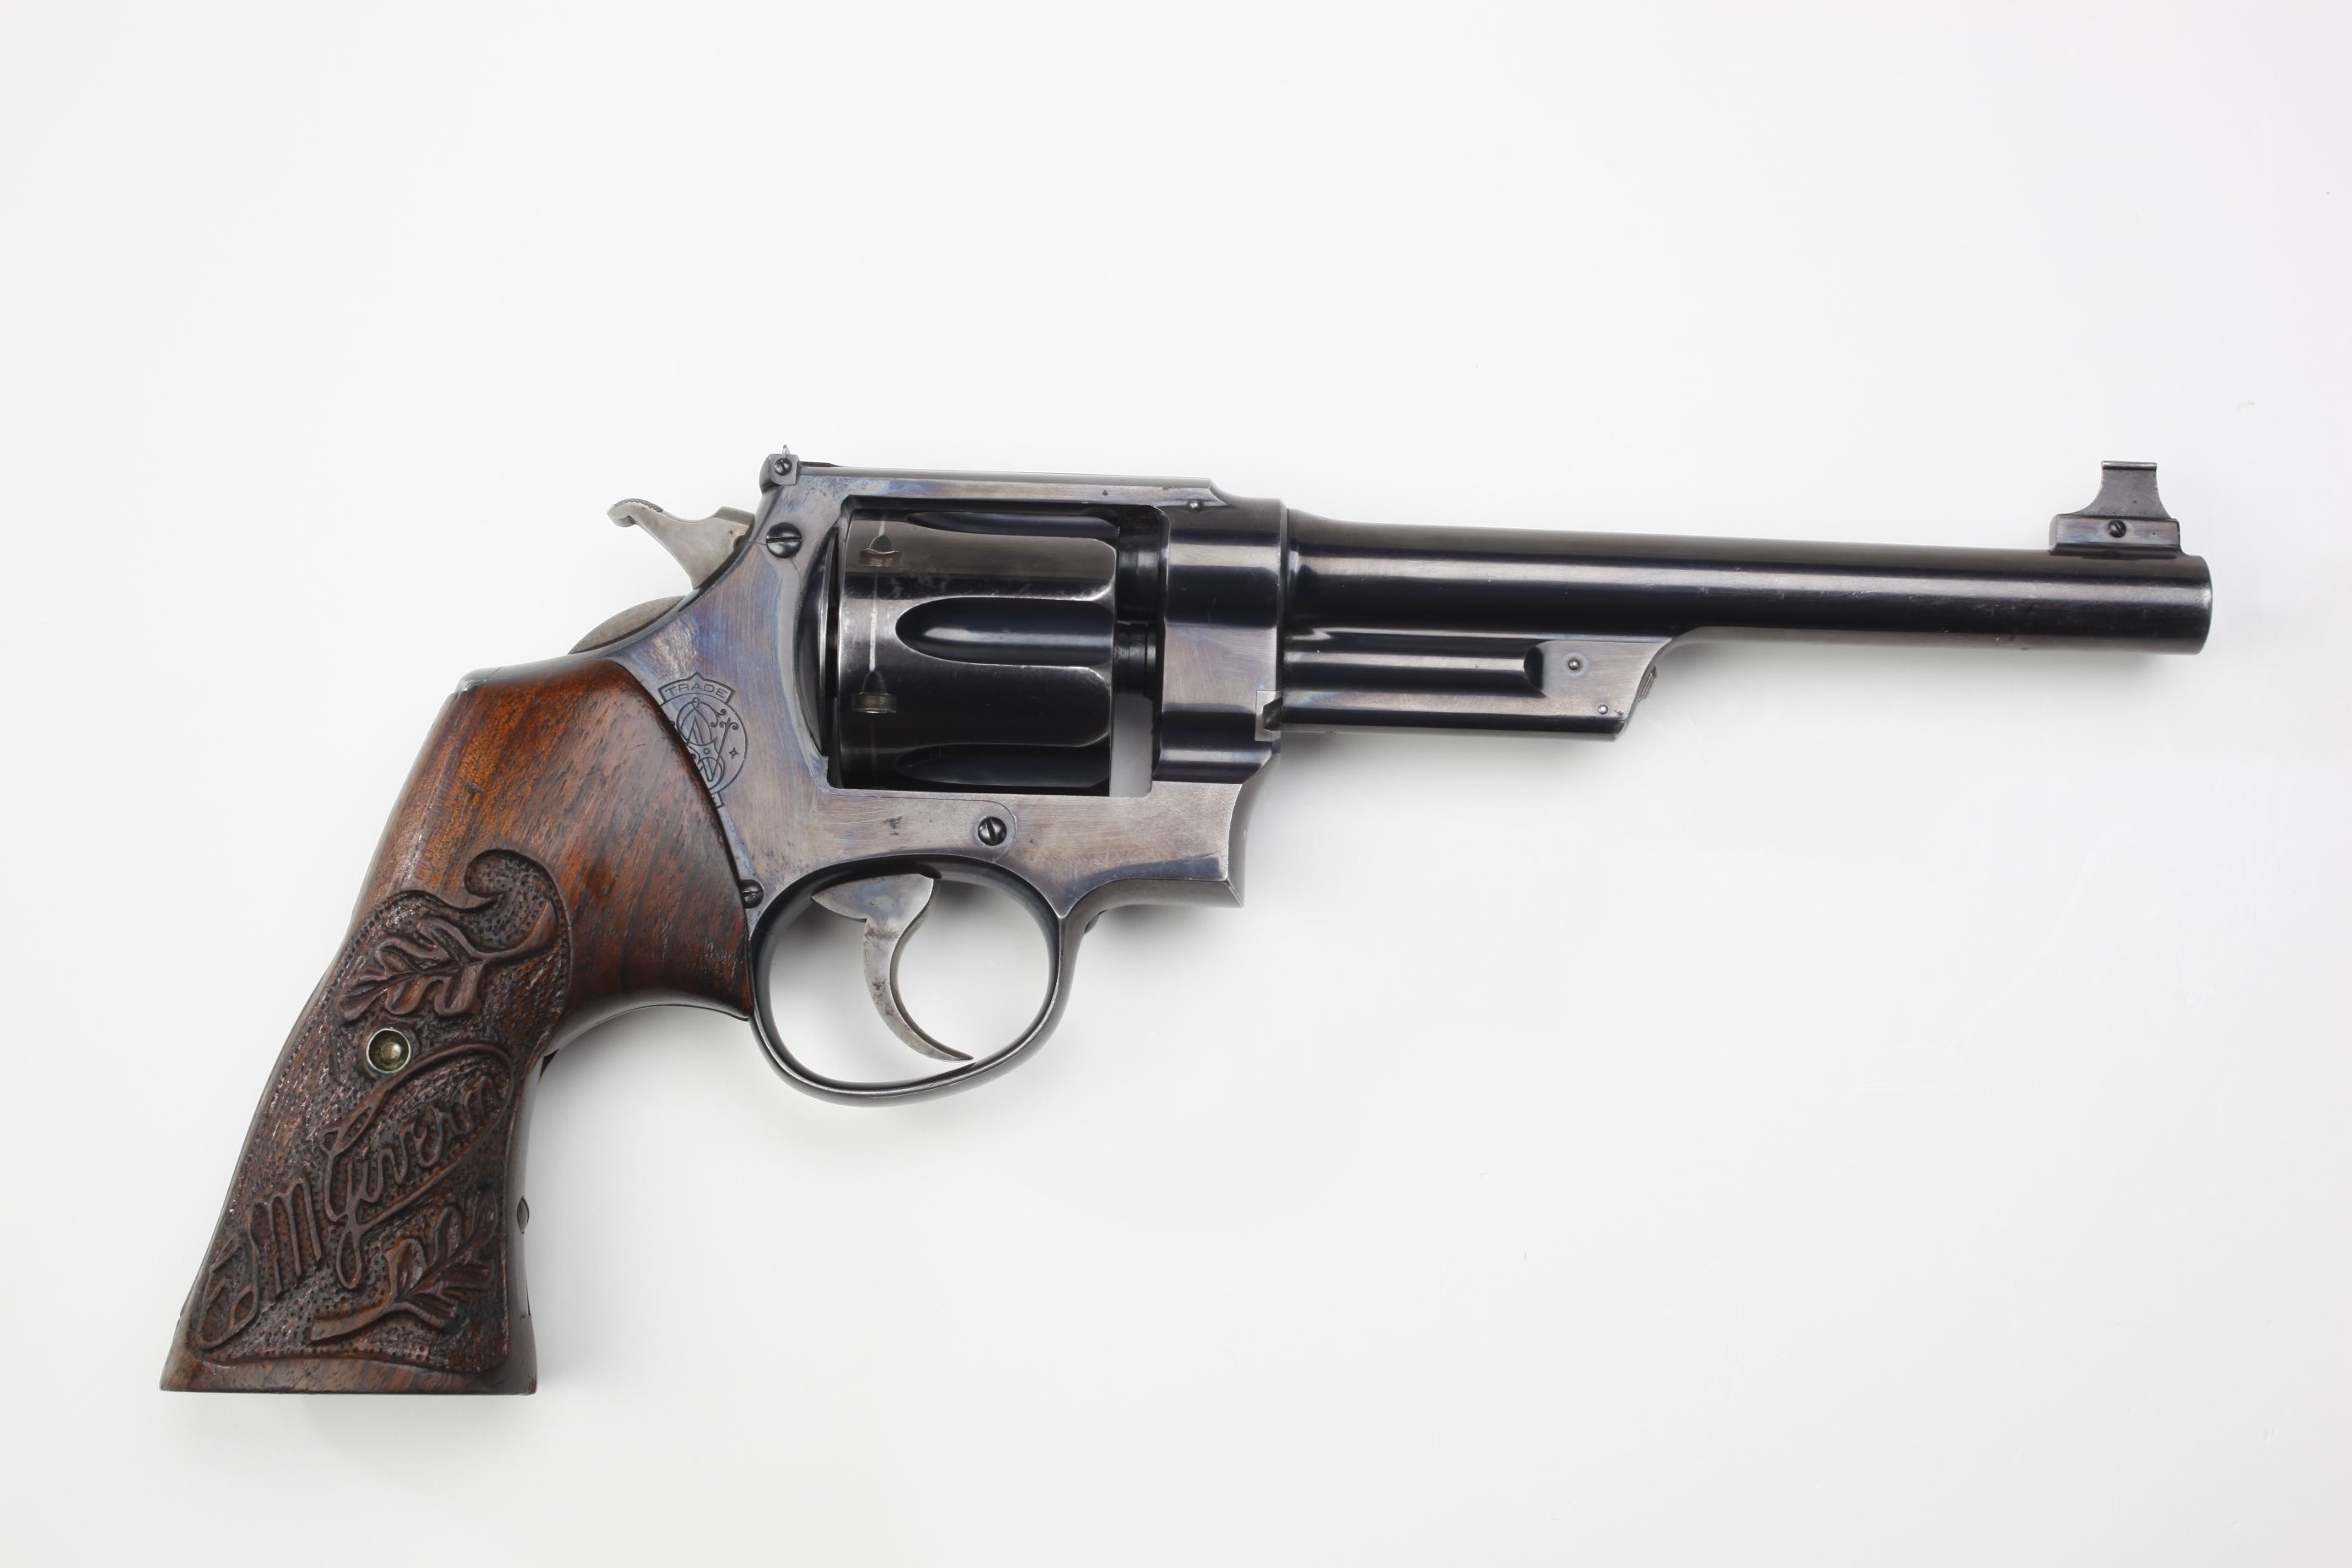 Smith & Wesson First Model Hand Ejector Revolver